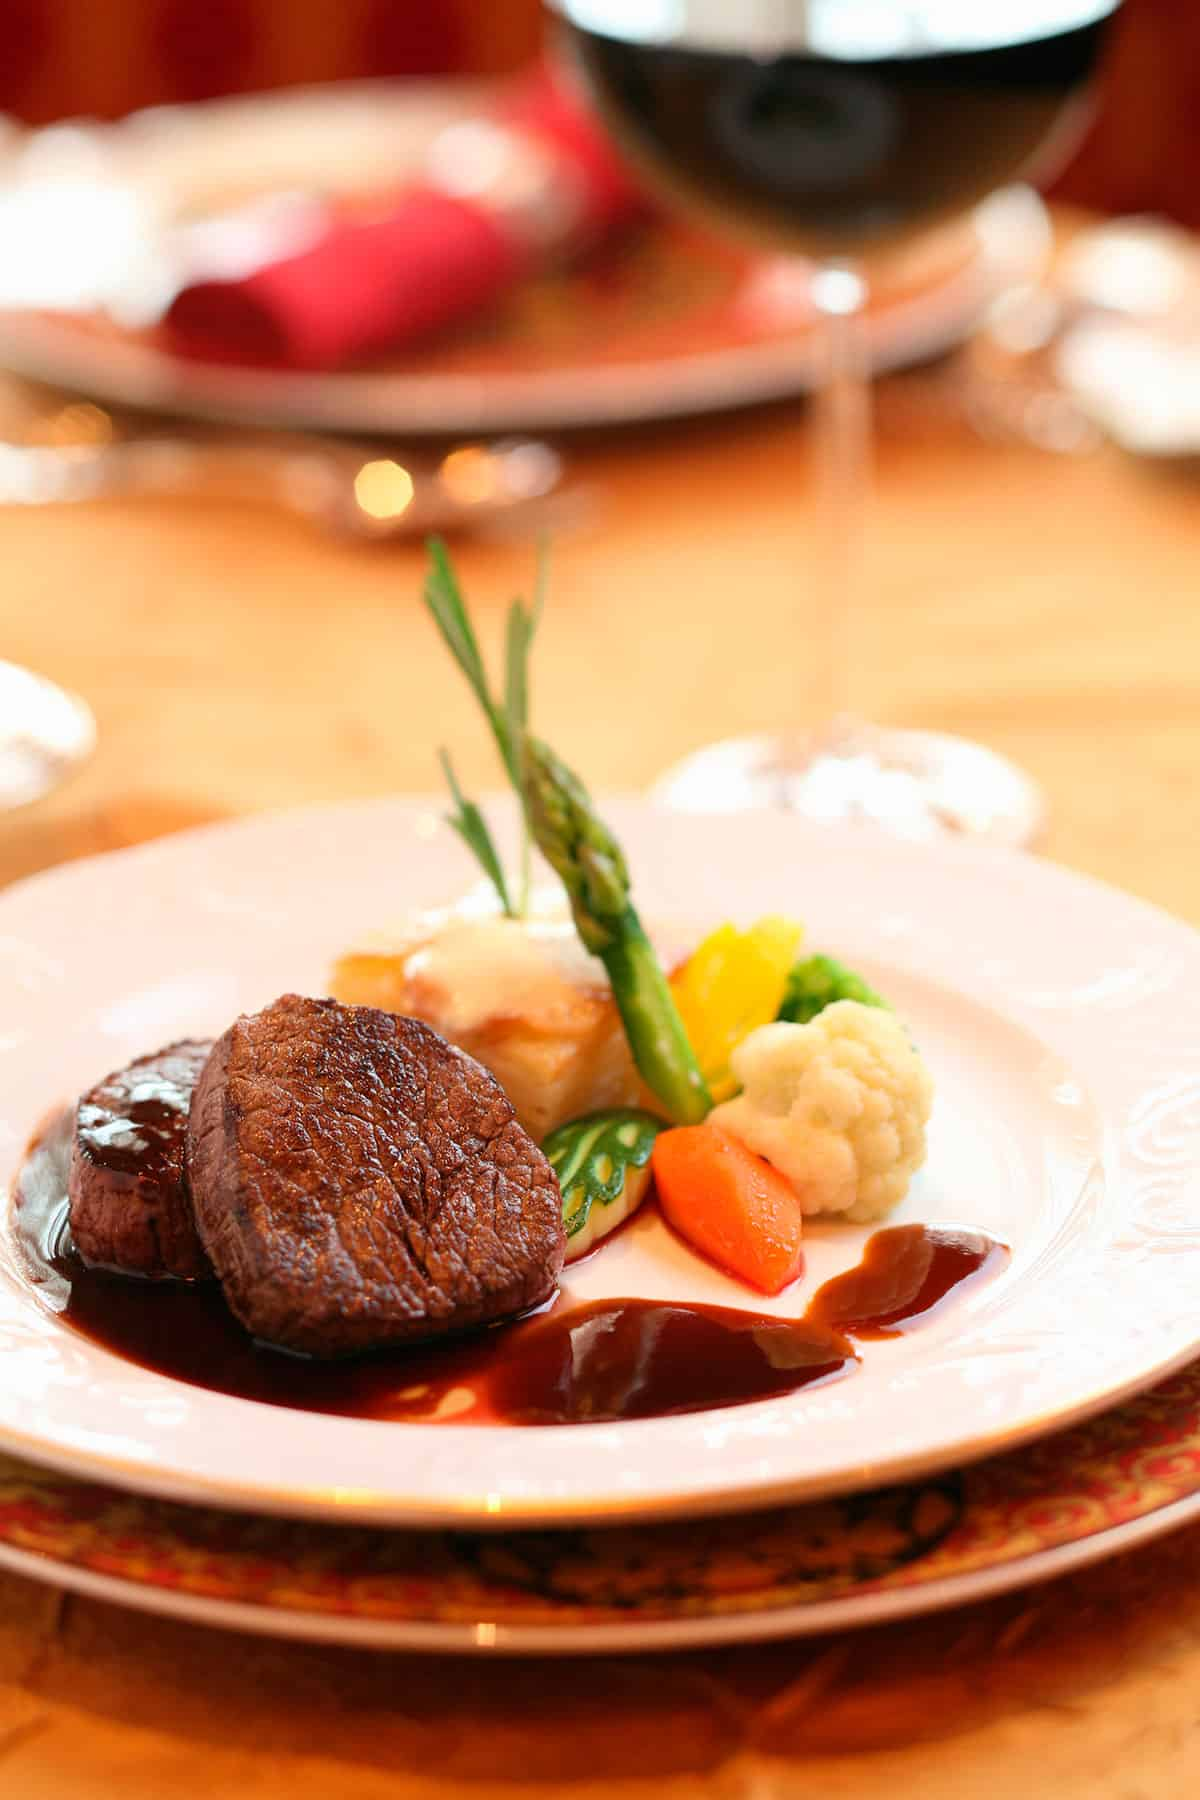 Beef Steak with Red Wine Sauce